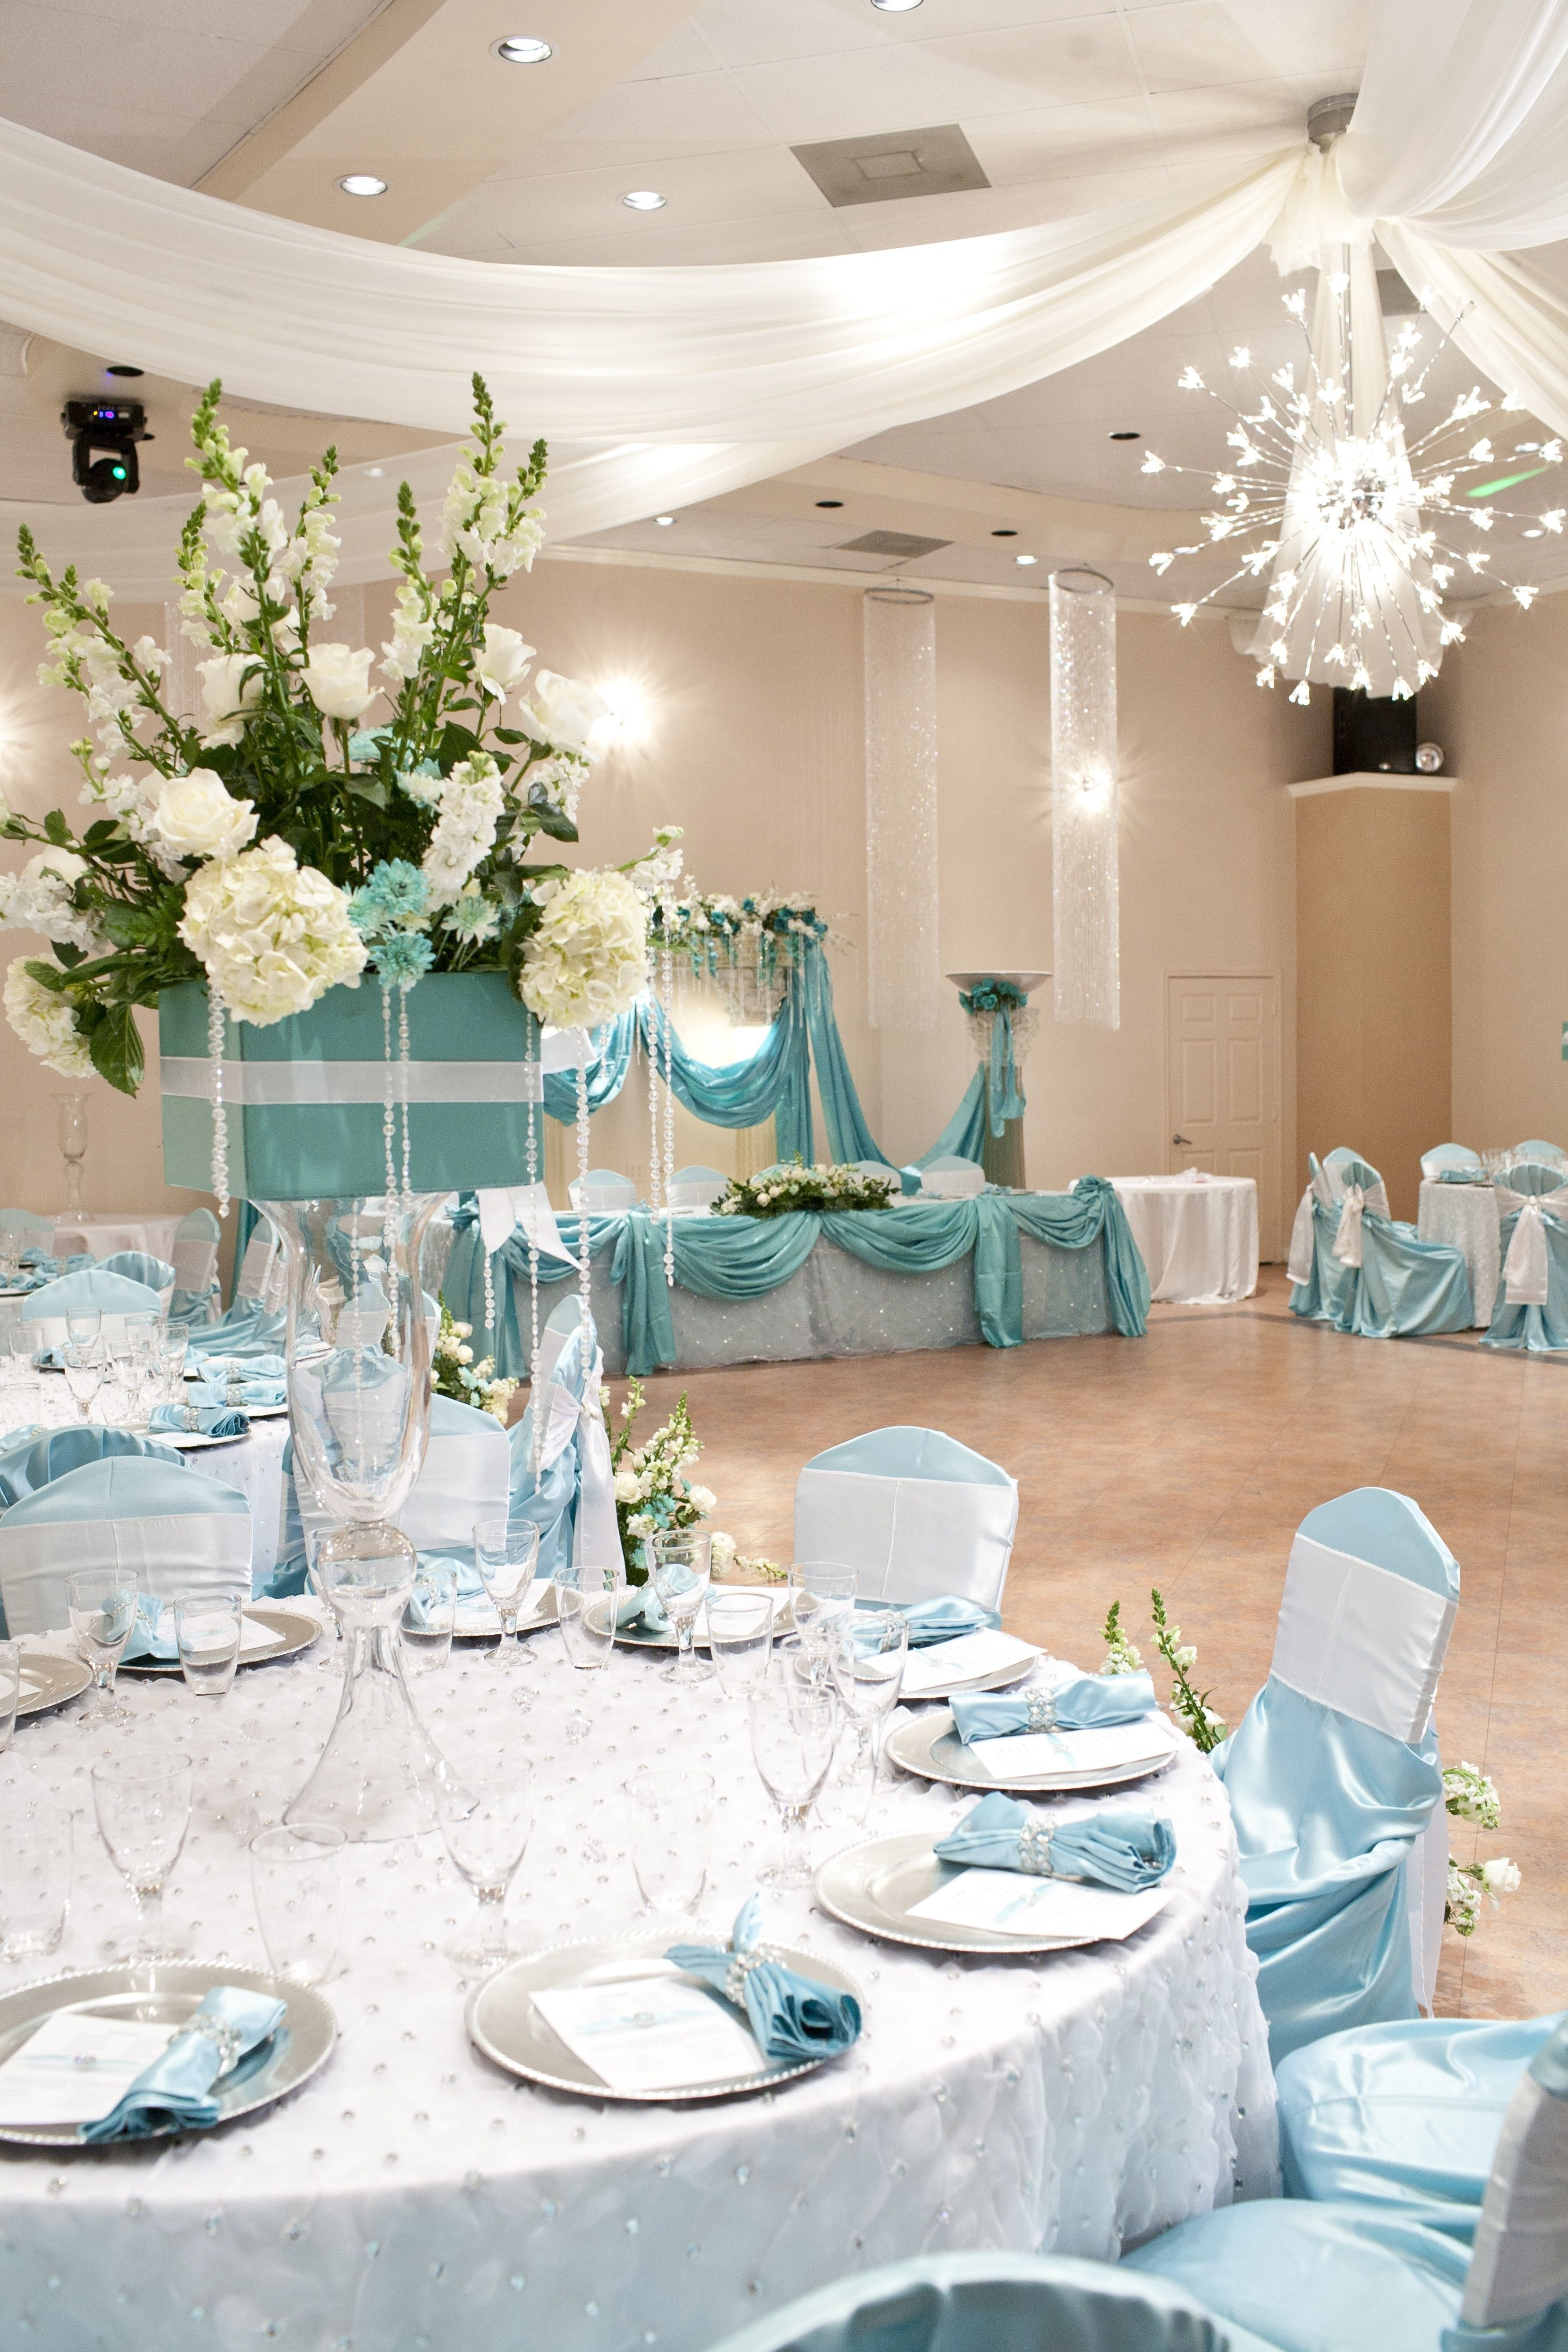 Decoration Mariage Chic Elegant Gorgeous But Need A Little Less Blue And Add Some Gold